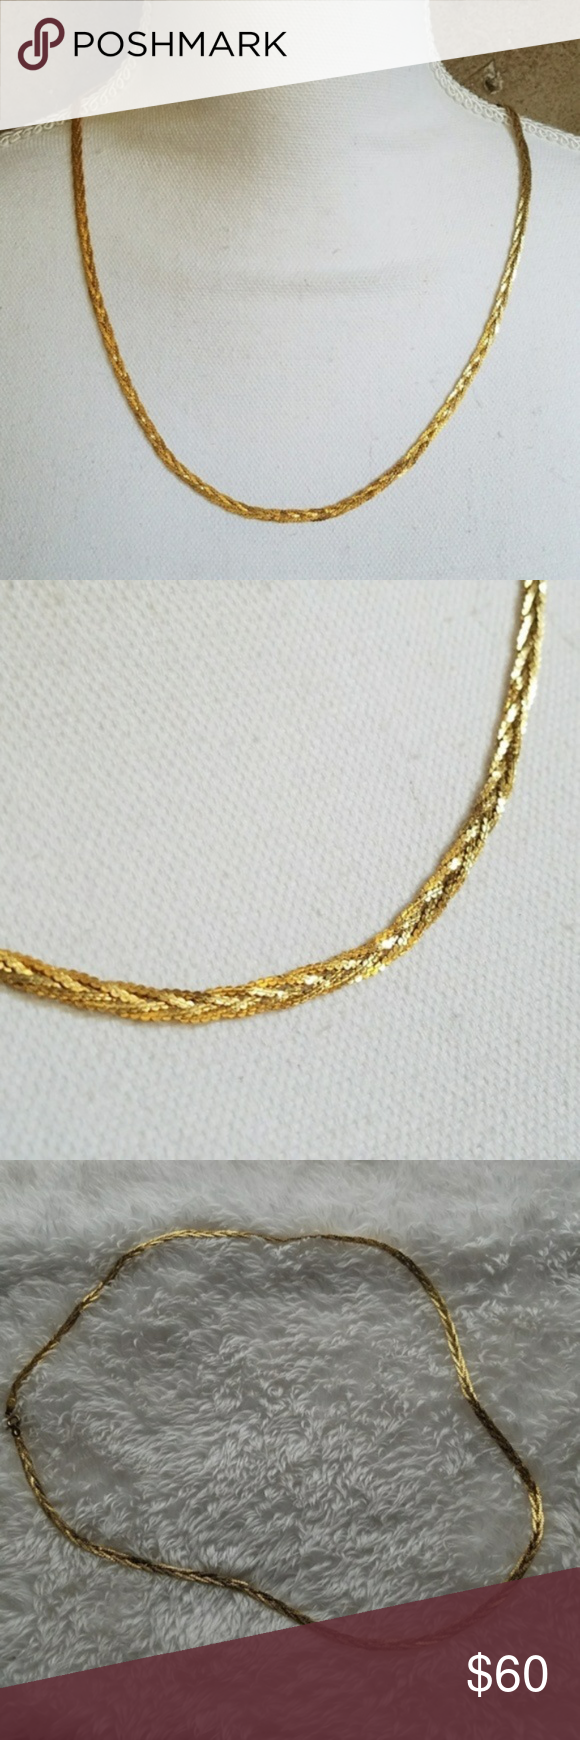 GOLD Italy 925 Vermeil Braided Chain Necklace Lovely 24